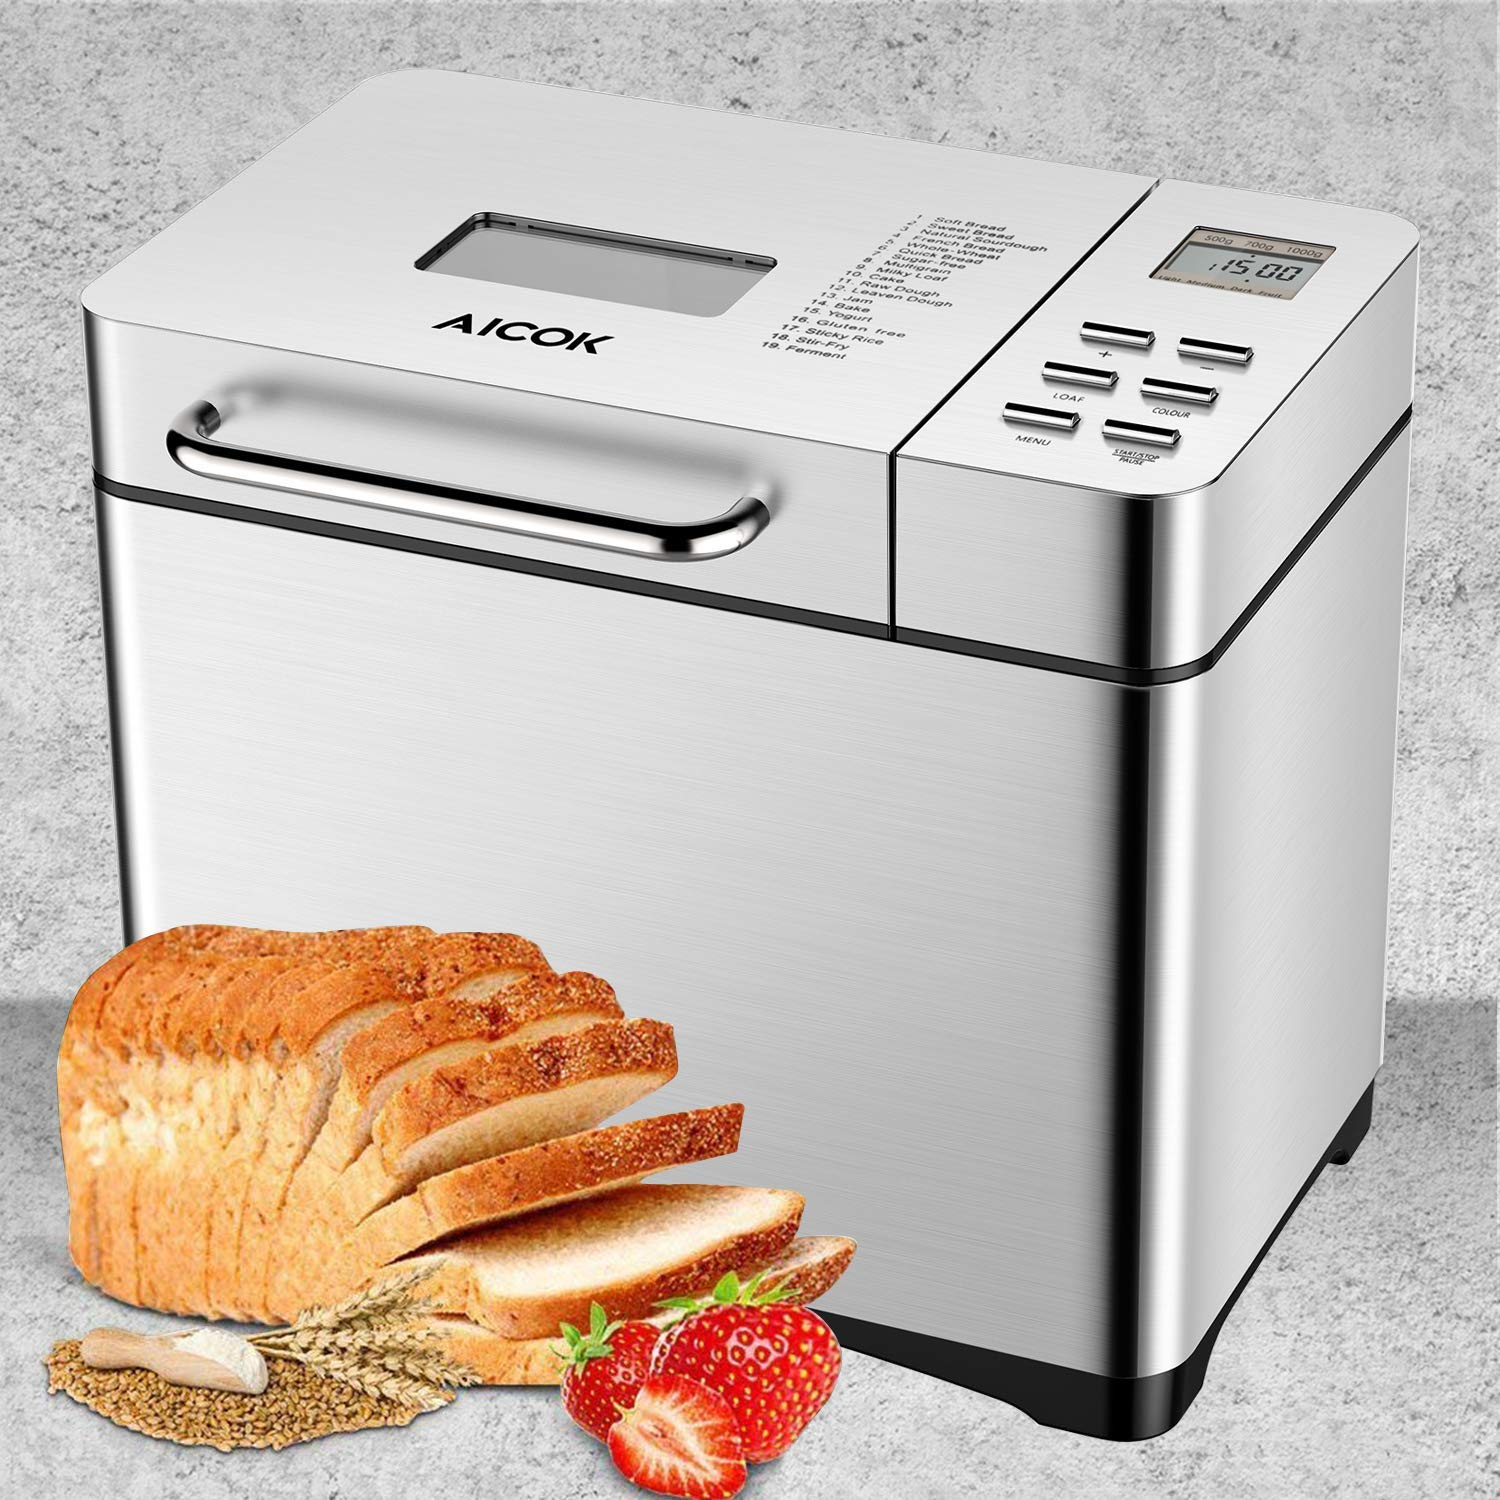 Aicok Stainless Steel Bread Machine, 2LB 19-in-1 Programmable XL Bread Maker with Fruit Nut Dispenser, Nonstick Ceramic Pan, 3 Loaf Sizes & 3 Crust Colors, Gluten-Free Setting, Reserve& Keep Warm Set by AICOK